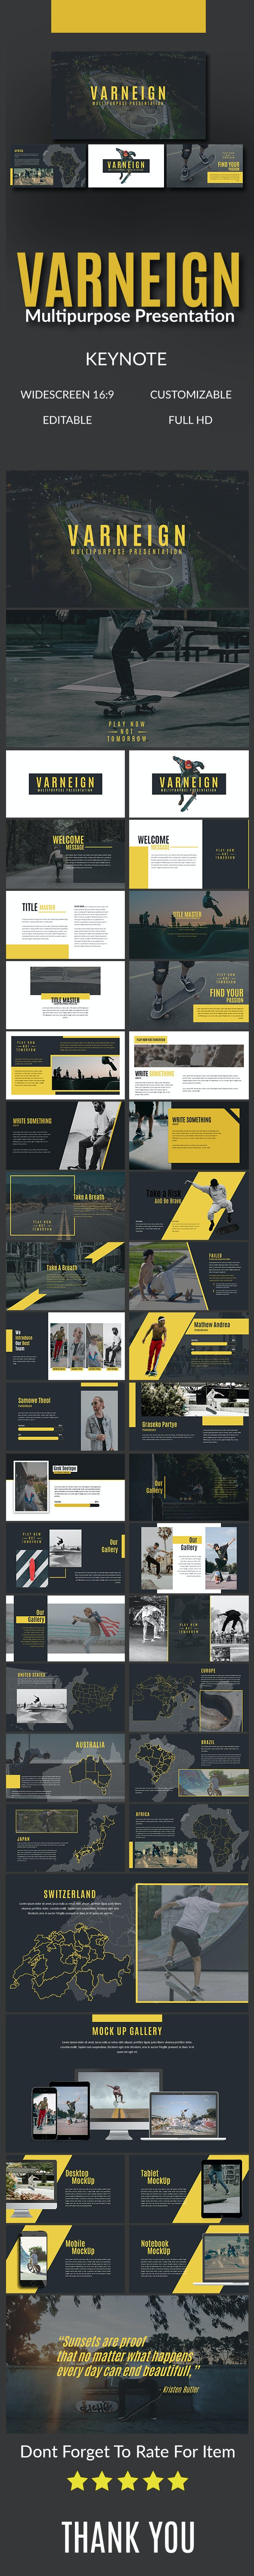 Varneign Multipurpose Presentation - Abstract Keynote Templates